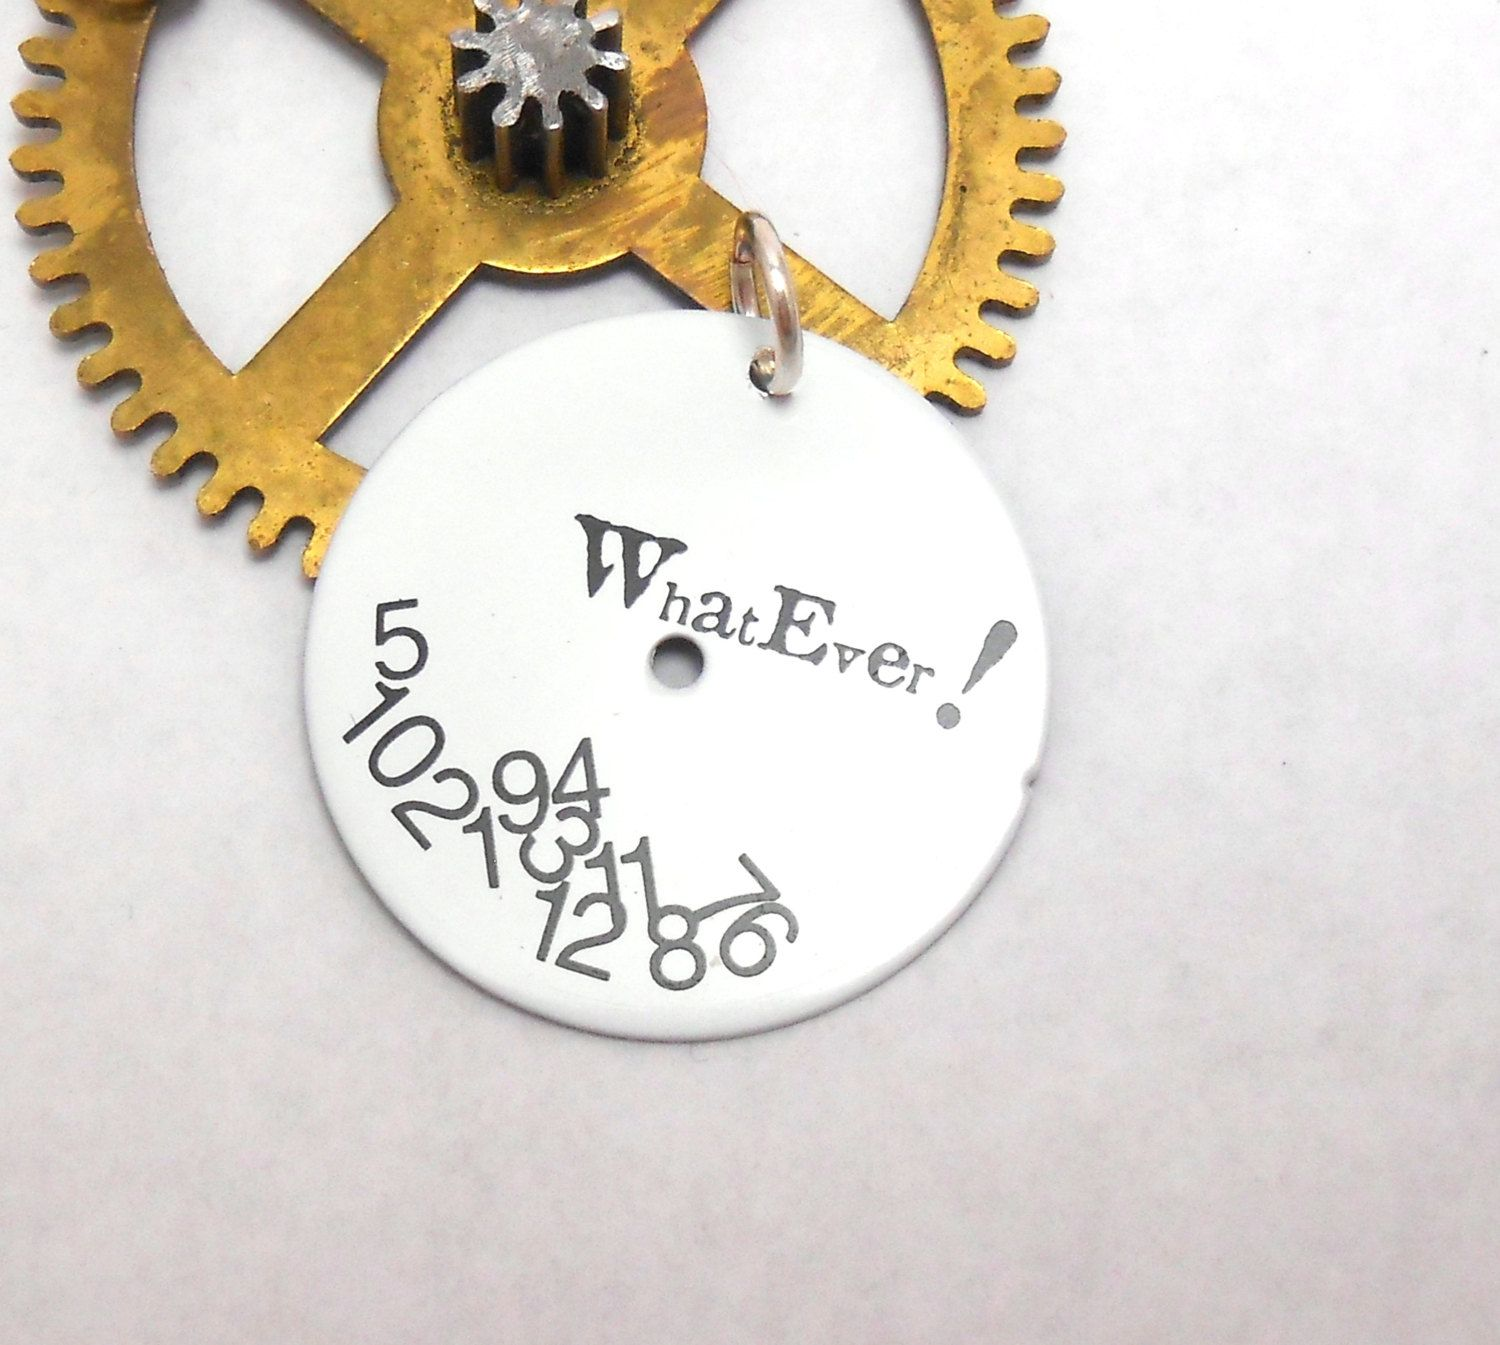 Whatever steampunk upcycled genuine watch dial watch face pendant by whatever steampunk upcycled genuine watch dial watch face pendant by jewelrybymatt on etsy aloadofball Gallery